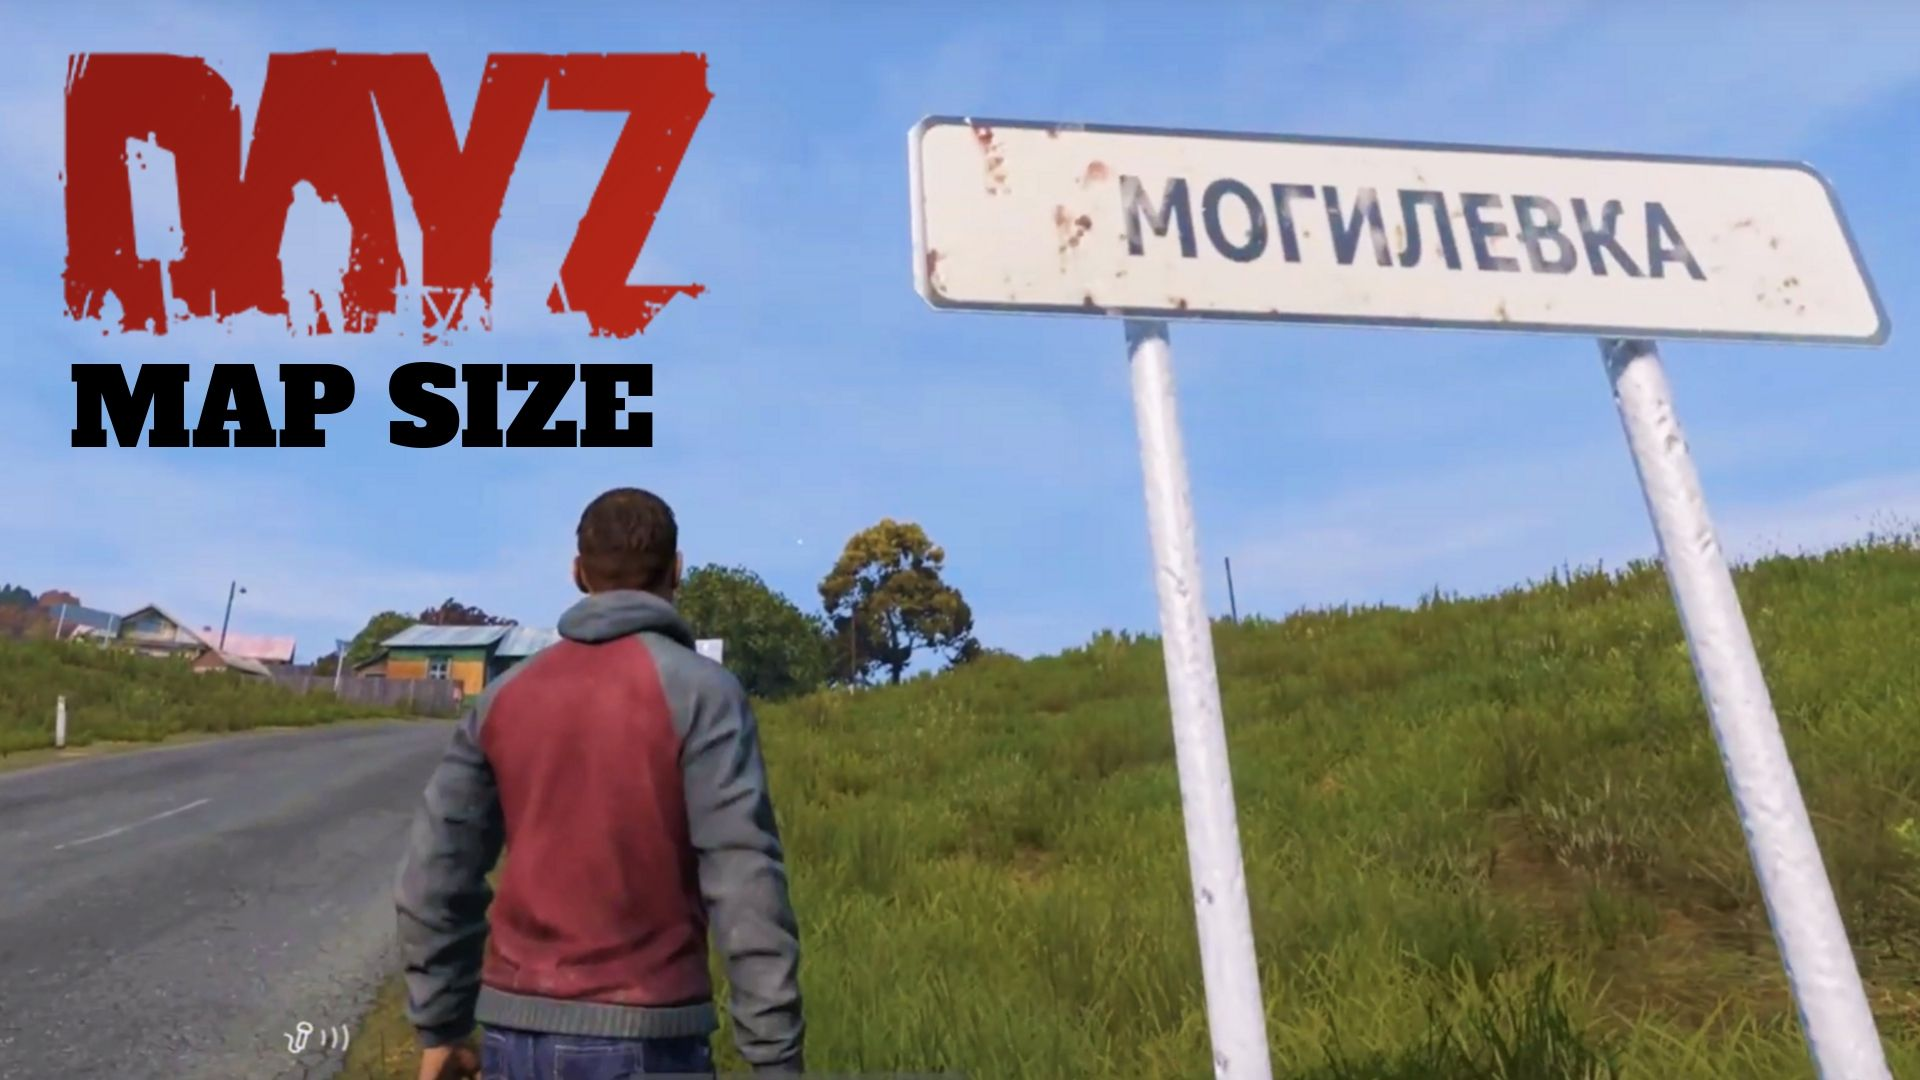 DayZ - Walk Across the Map - How Big is the Map Dayz Map Size on skyrim map size, driveclub map size, wasteland 2 map size, need for speed rivals map size, gta 5 map size, far cry 4 map size, tomb raider map size, fallout map size, l.a. noire map size, bloodborne map size, star citizen map size, starcraft 2 map size, don't starve map size, assassin's creed unity map size, goat simulator map size, open world map size, sunset overdrive map size, far cry 2 map size, infamous second son map size,